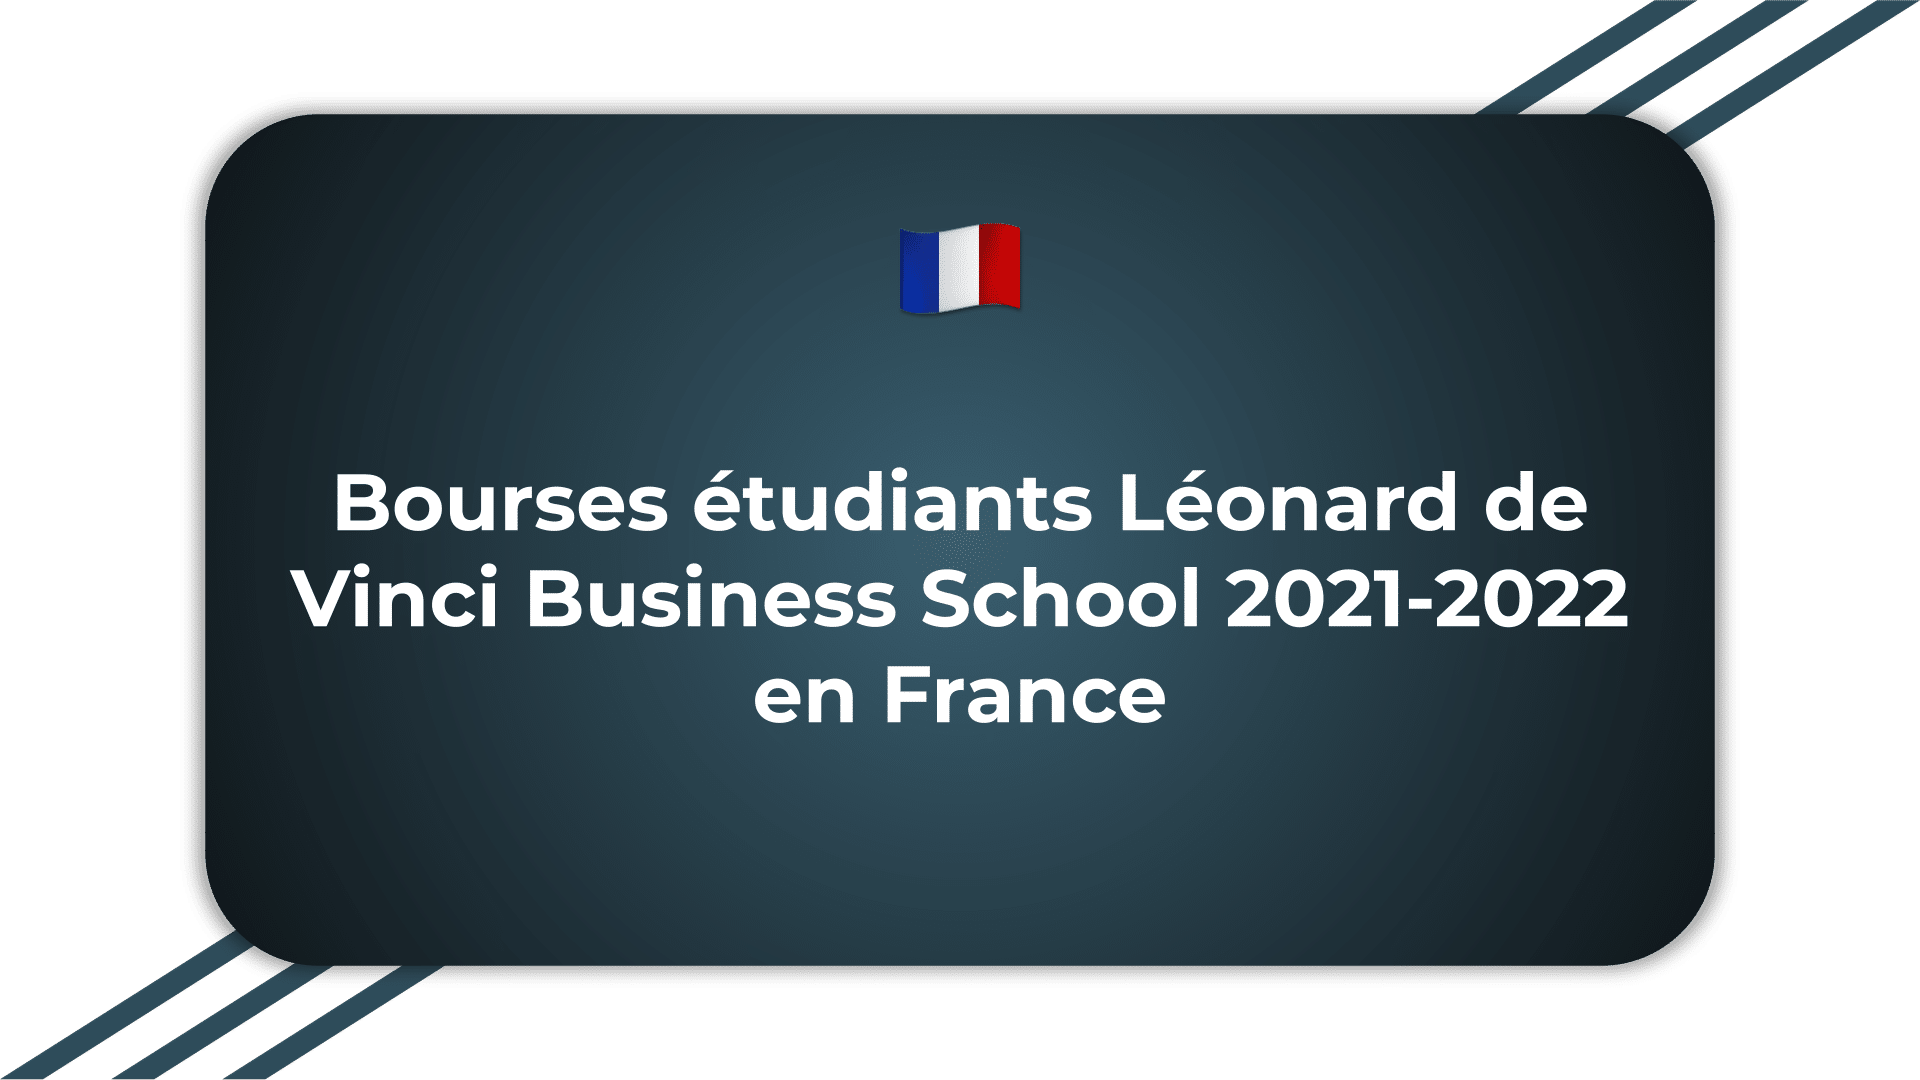 Bourses étudiants Léonard de Vinci Business School